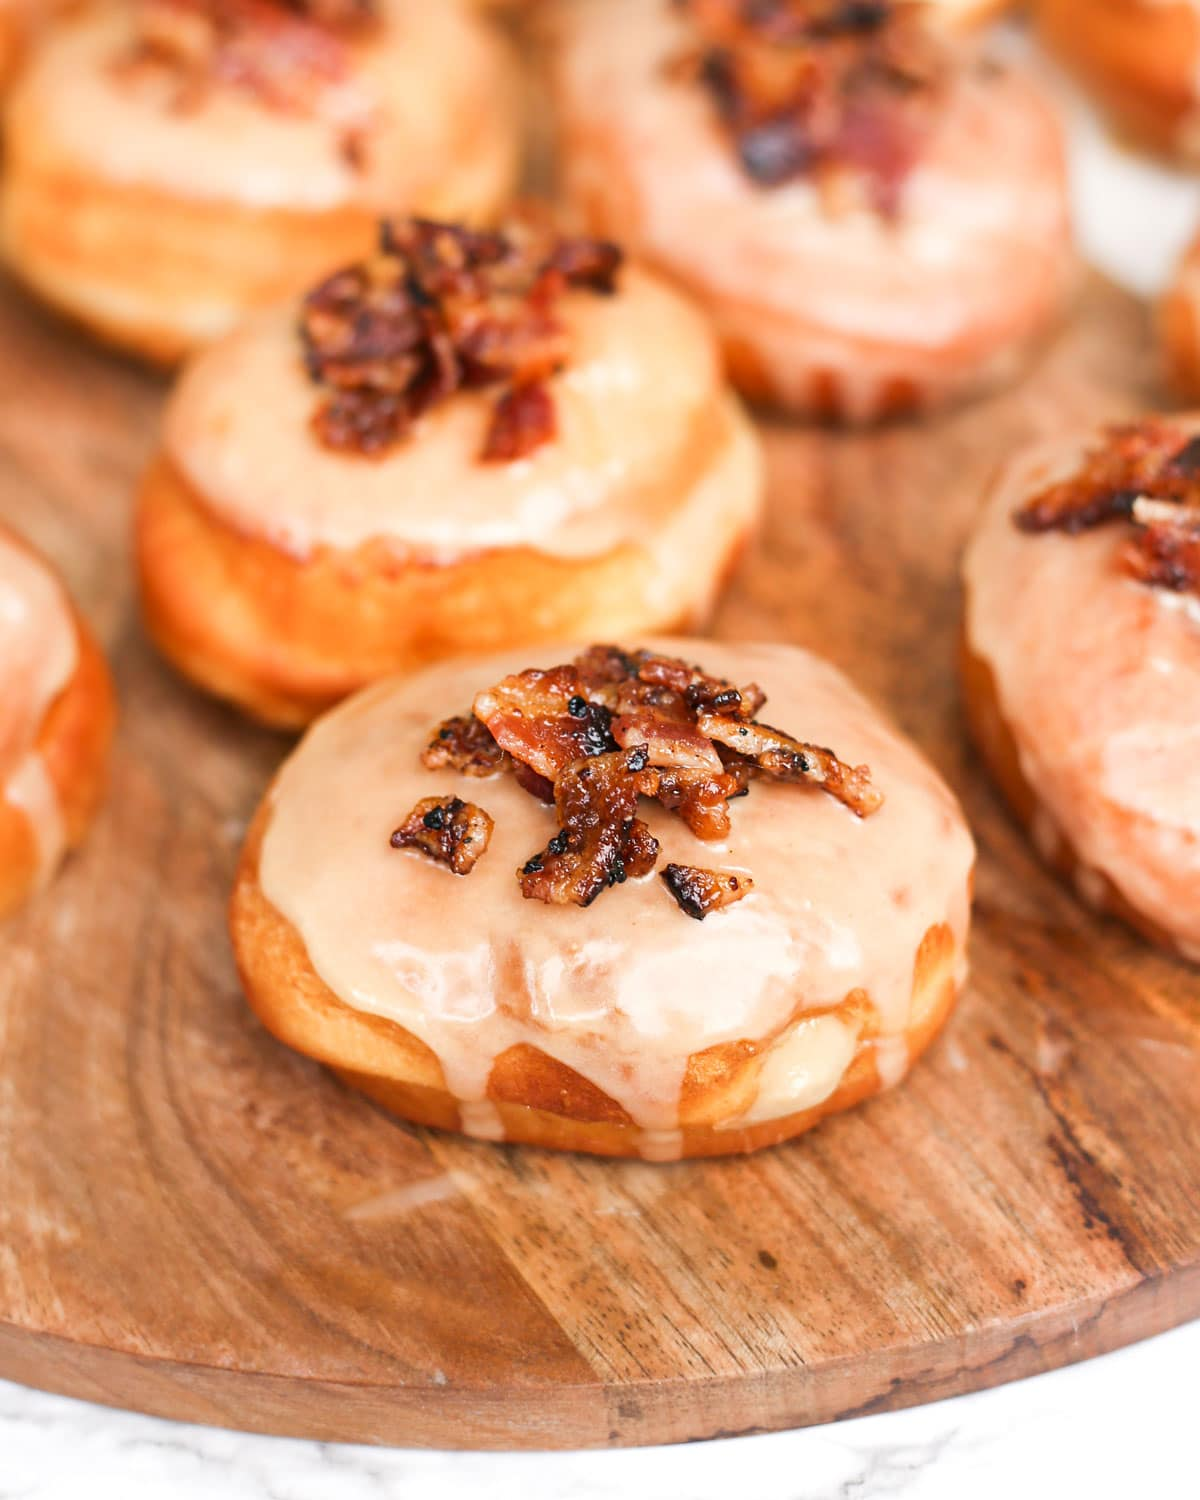 a maple bacon donut filled with custard on a platter